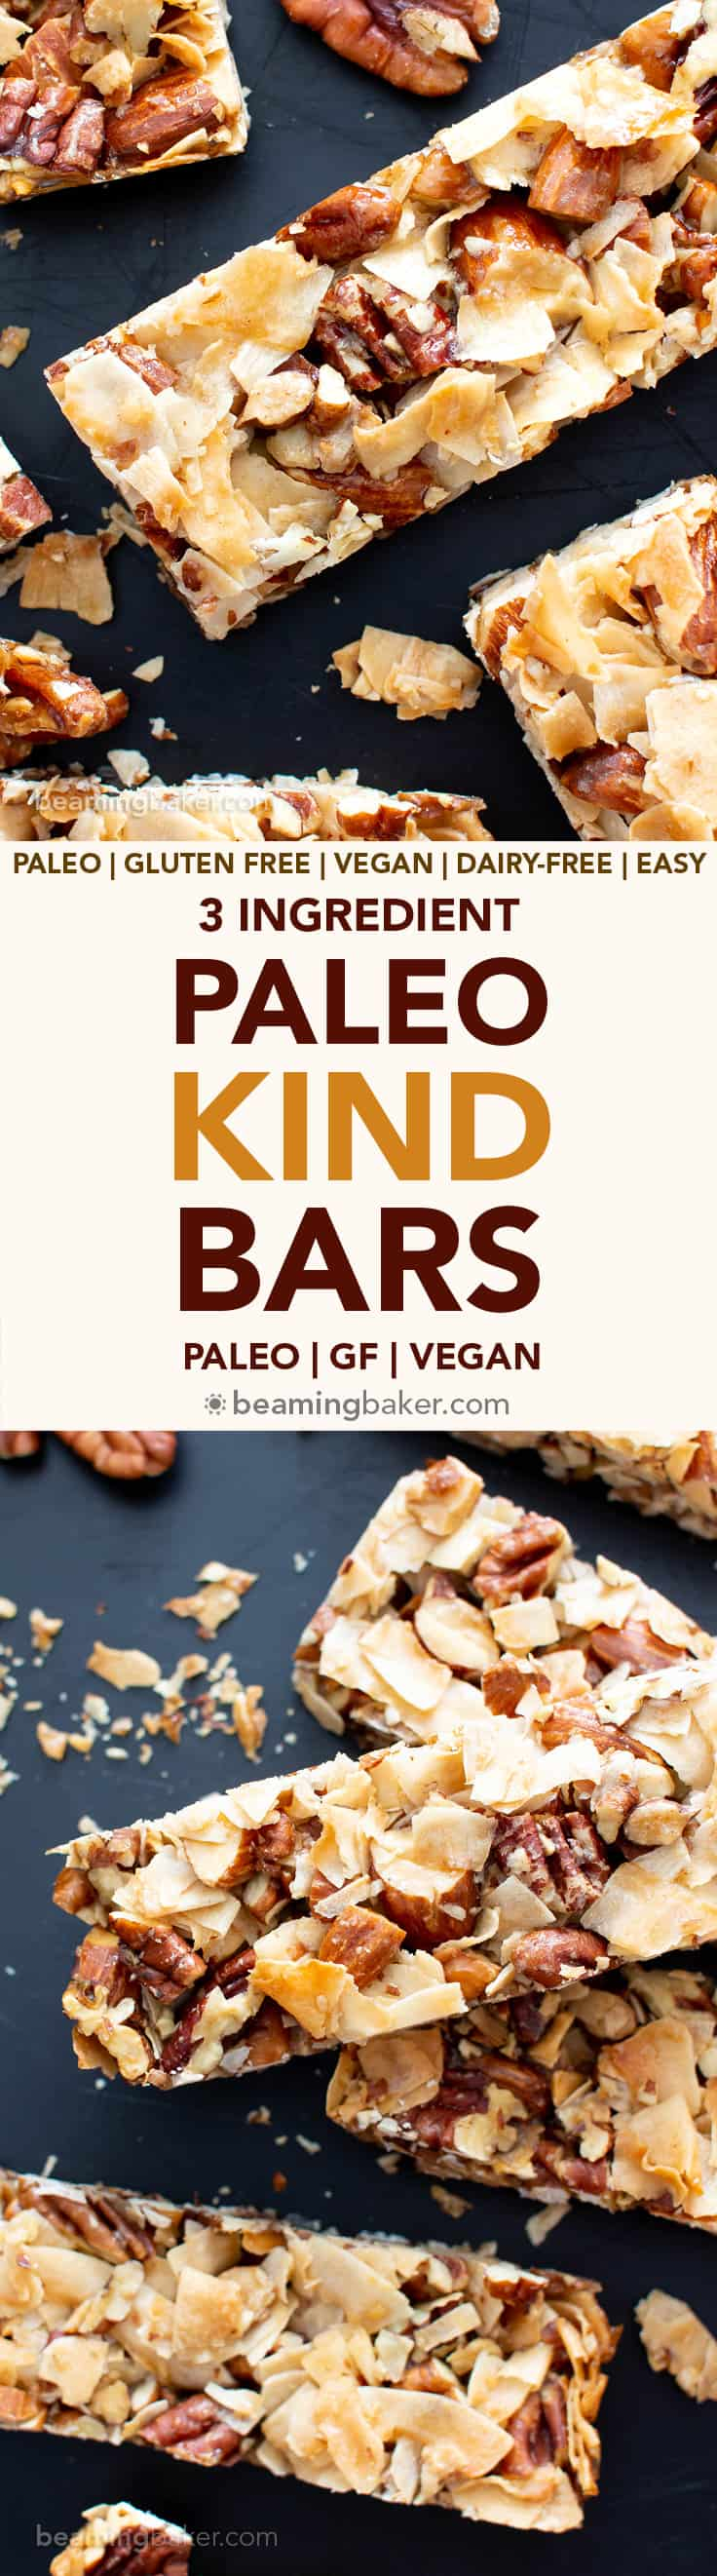 3 Ingredient Paleo KIND Bar Recipe (V, GF): this vegan paleo homemade kind bar recipe is so easy with 3 ingredients! It's the best way to learn how to make diy copycat kind bars – easy, healthy, and prep'd in 5 minutes! #KindBars #Healthy #Vegan #Paleo | Recipe at BeamingBaker.com